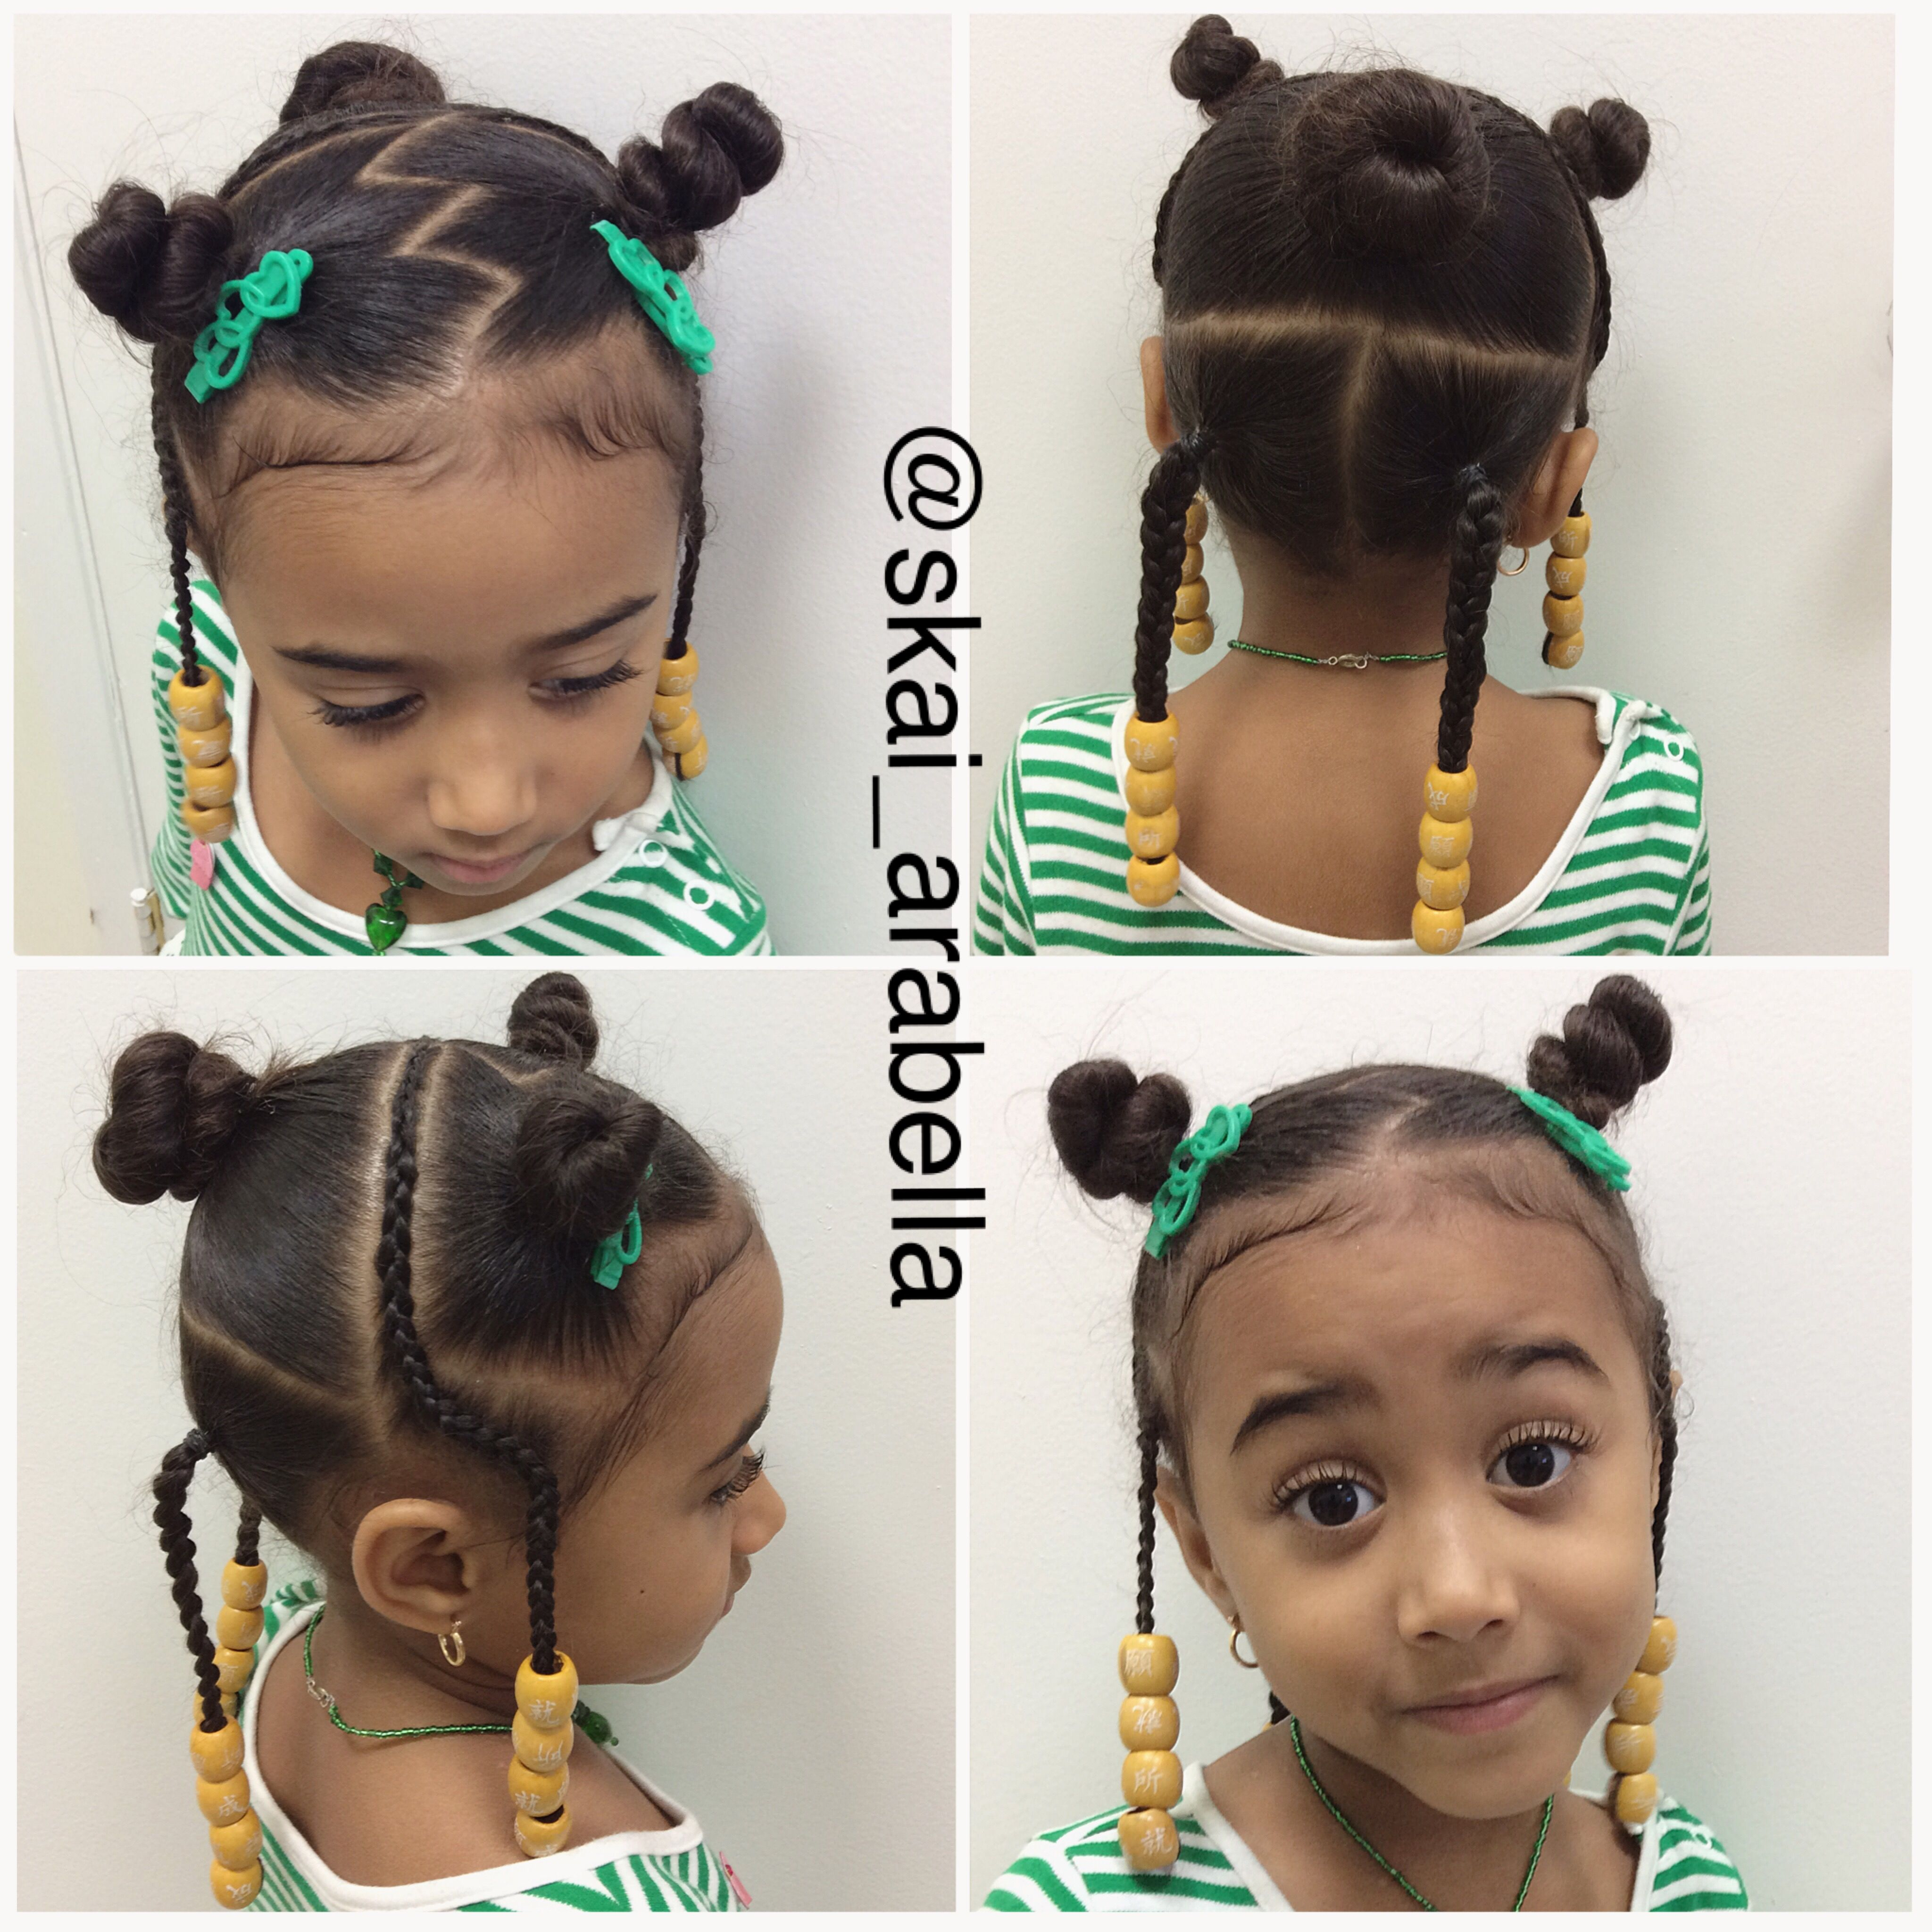 Toddler Hairstyle With Wooden Beads Toddler Hair Hair Styles Toddler Hairstyles Girl